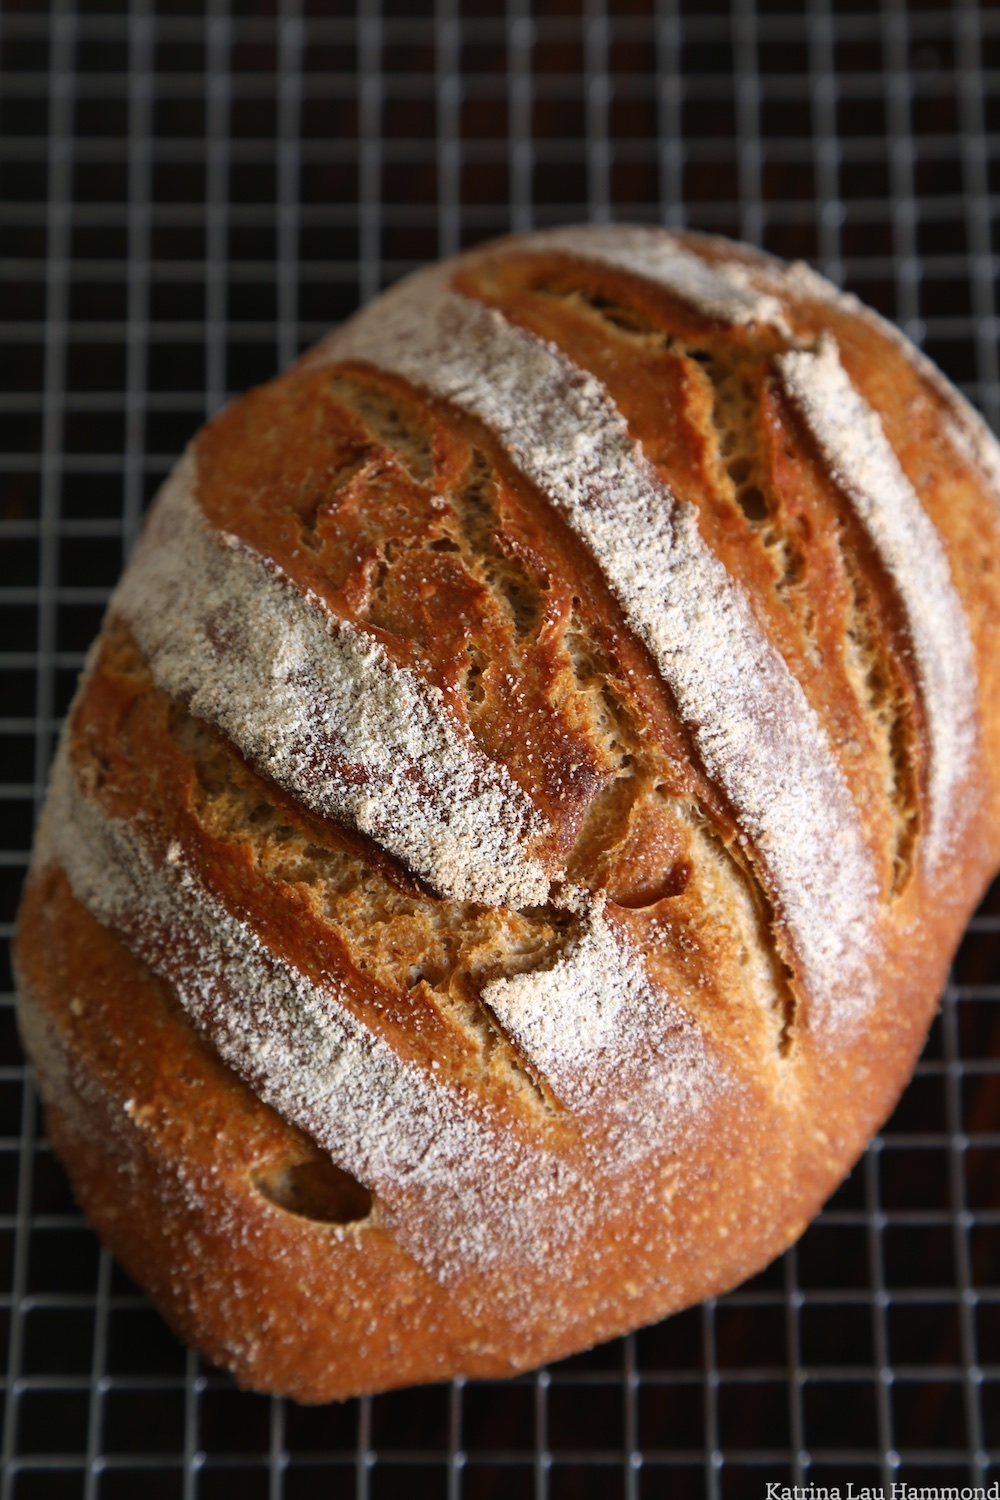 European_peasant_loaf_002_KLH.jpg